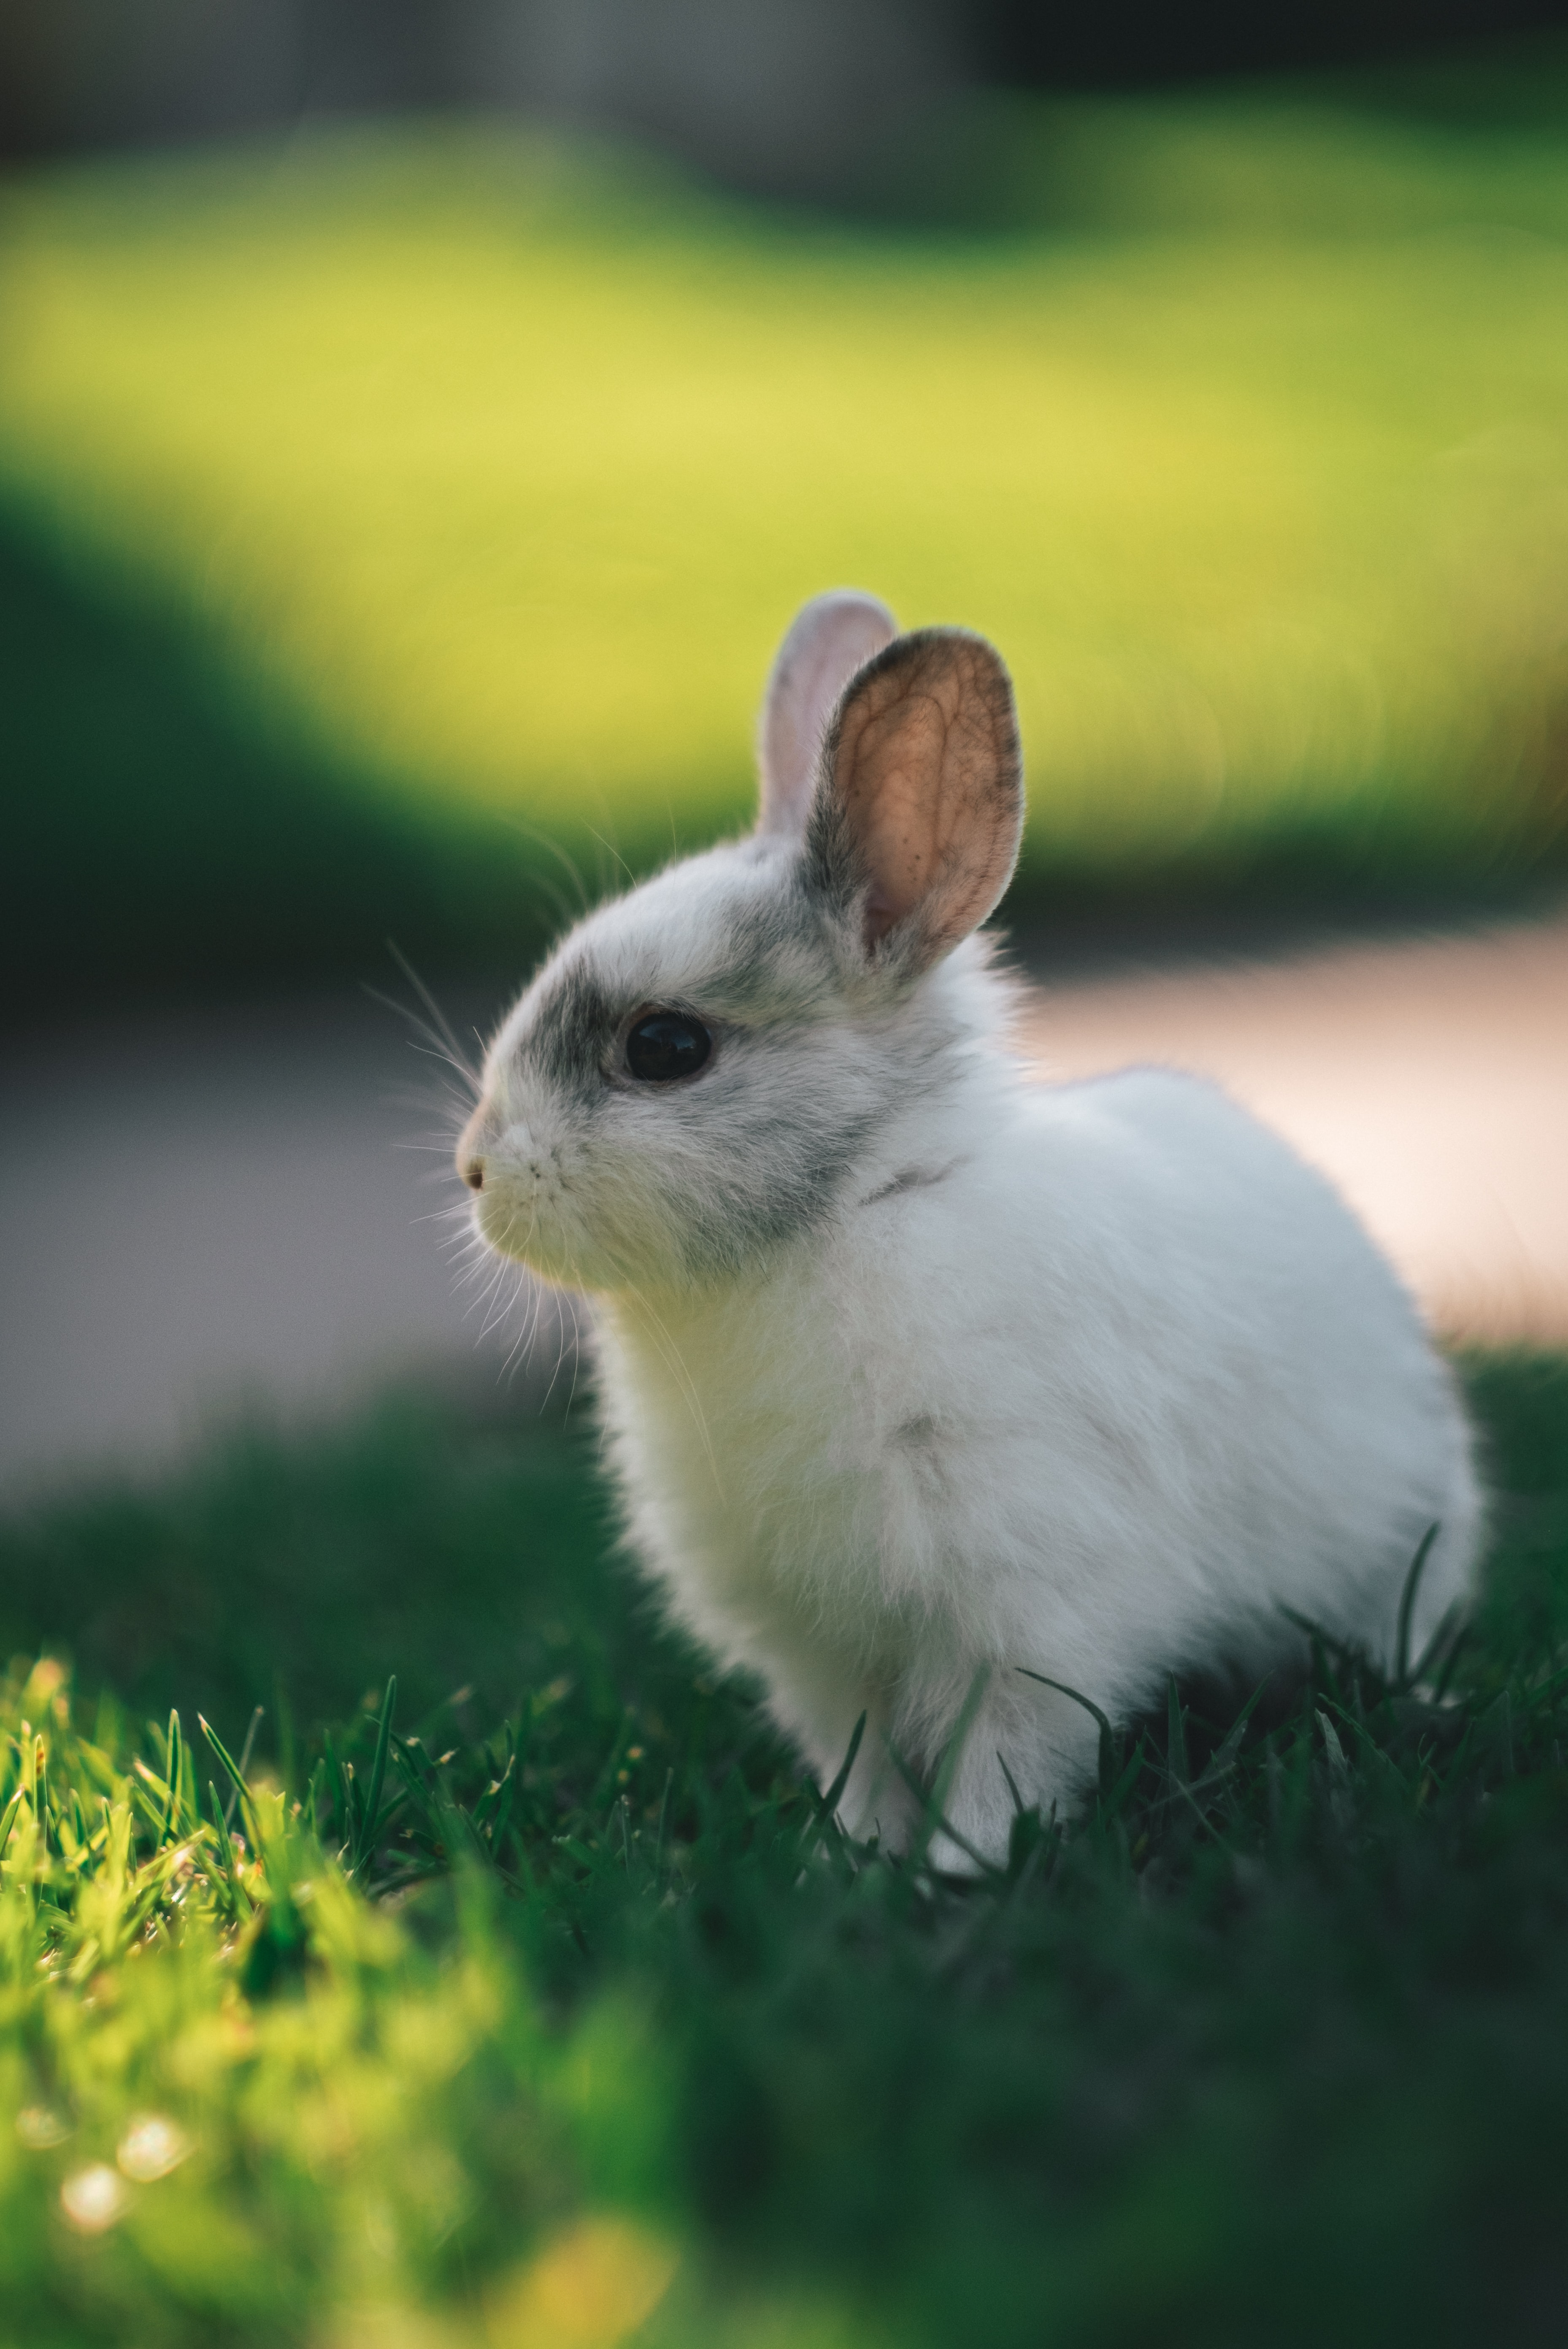 93113 download wallpaper Animals, Rabbit, Profile, Animal, Nice, Sweetheart screensavers and pictures for free